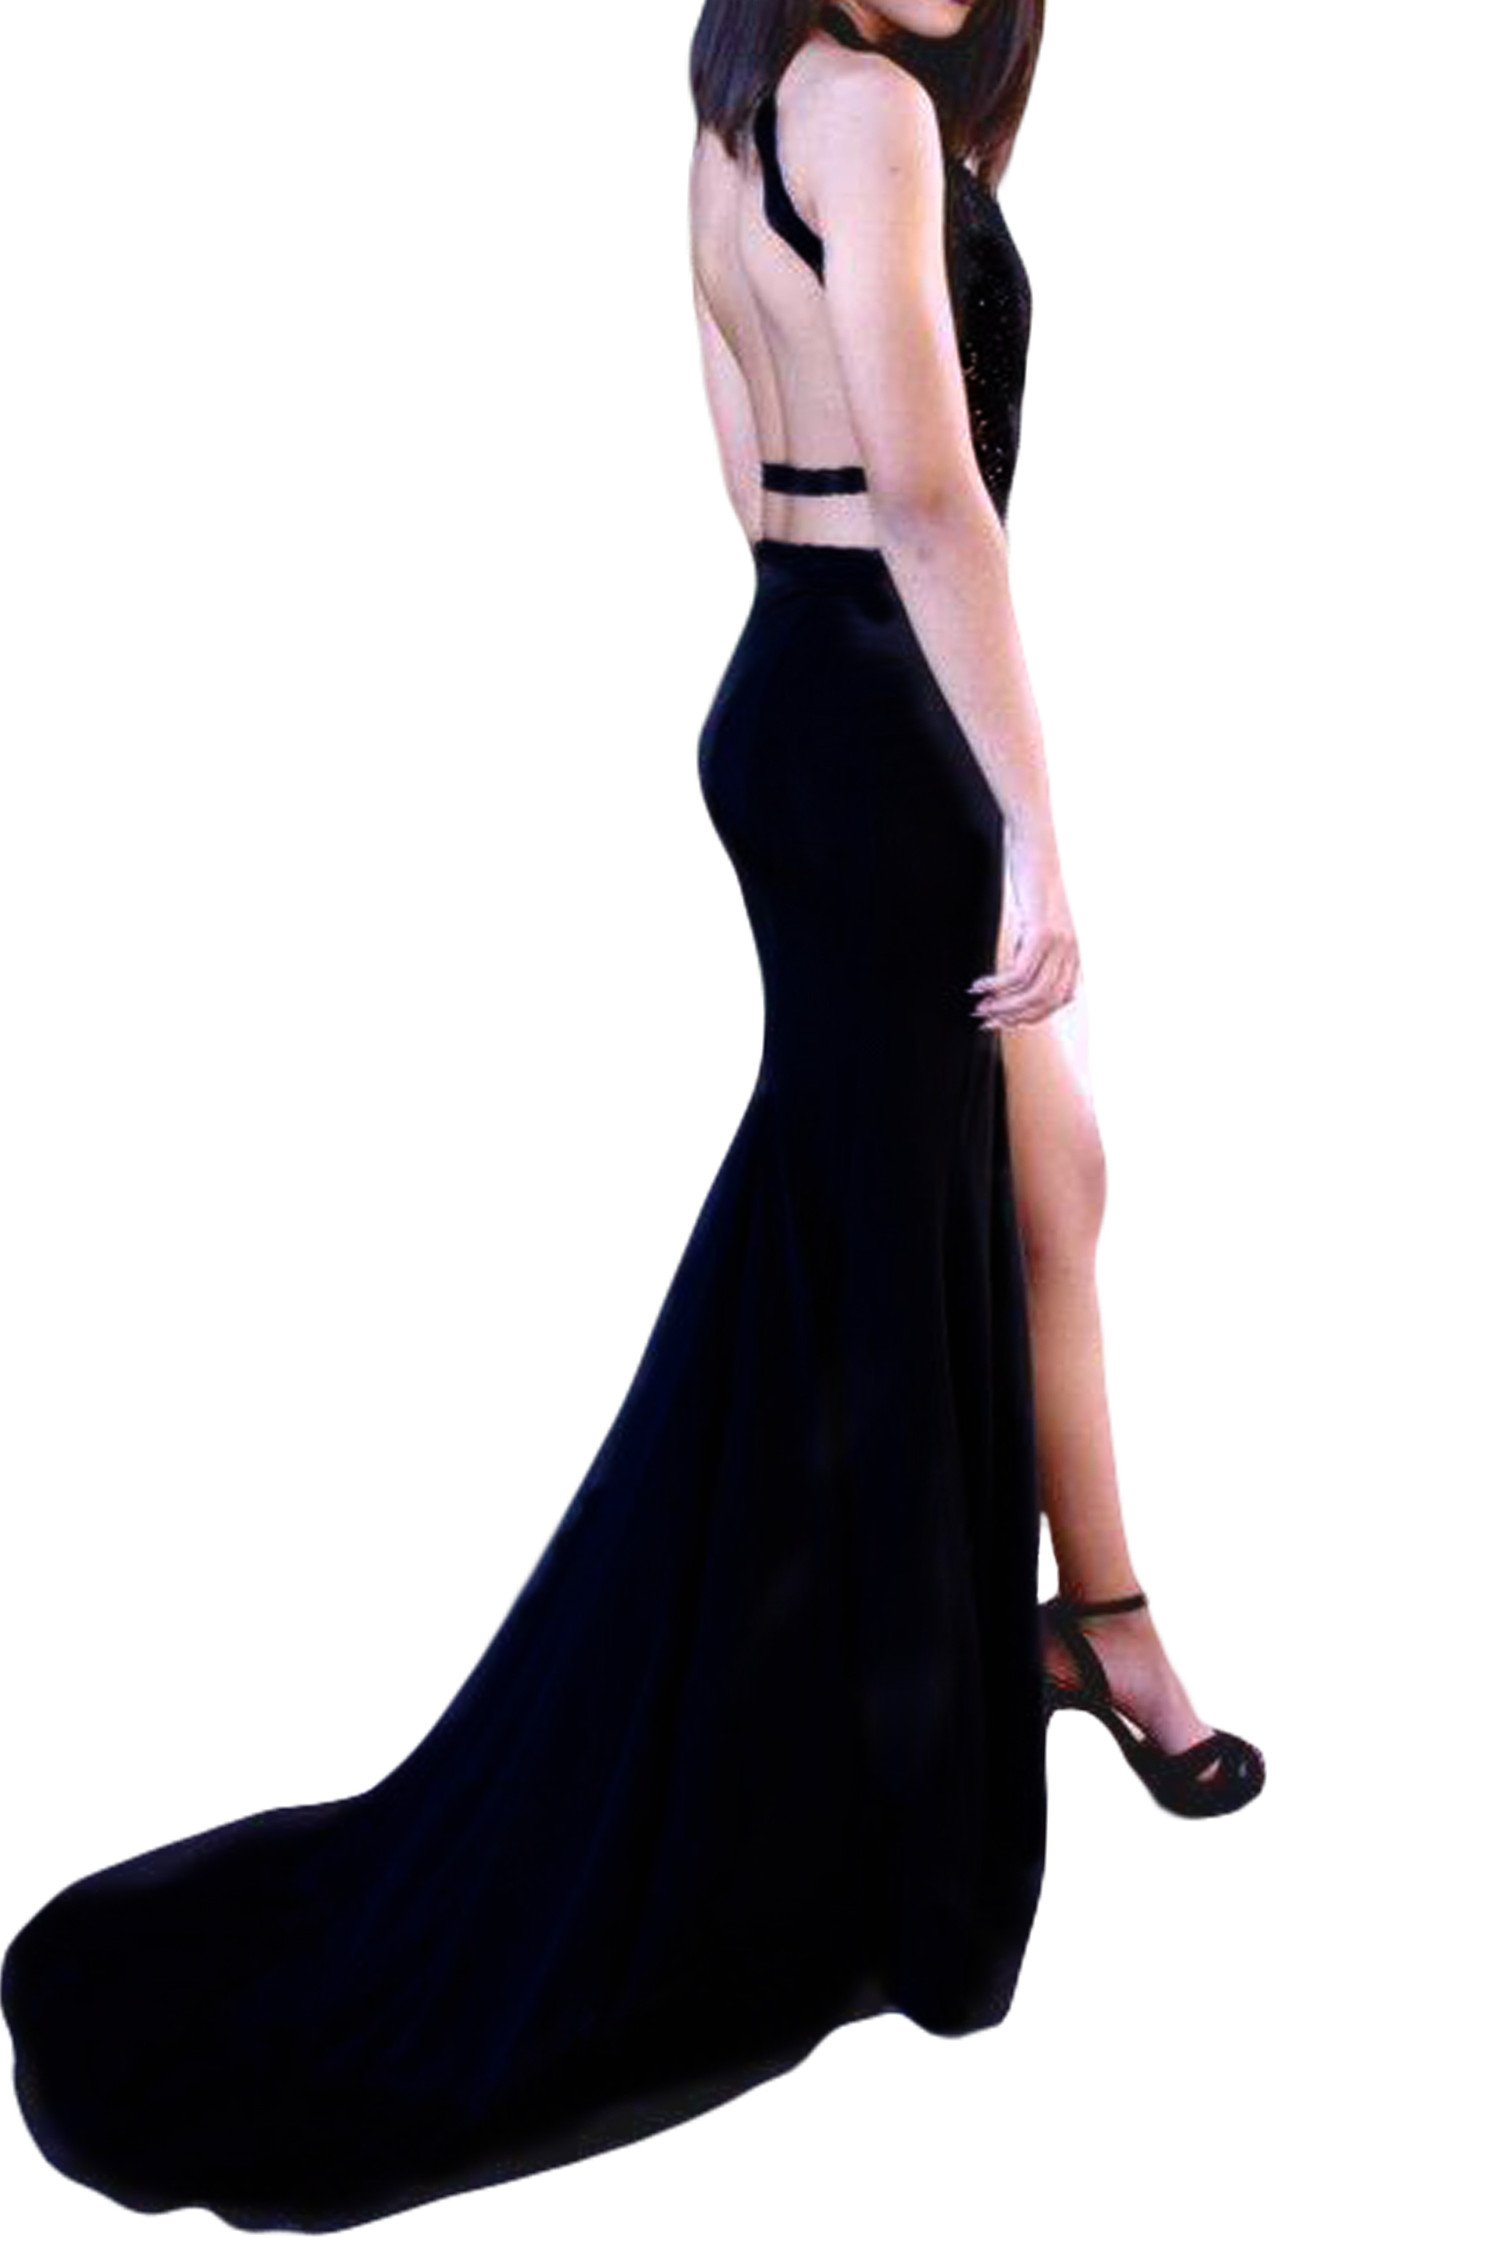 SeasonMall Women's Halter Open Back Spandex With Applique Mermaid Prom Dresses Black Size 6 by SeasonMall